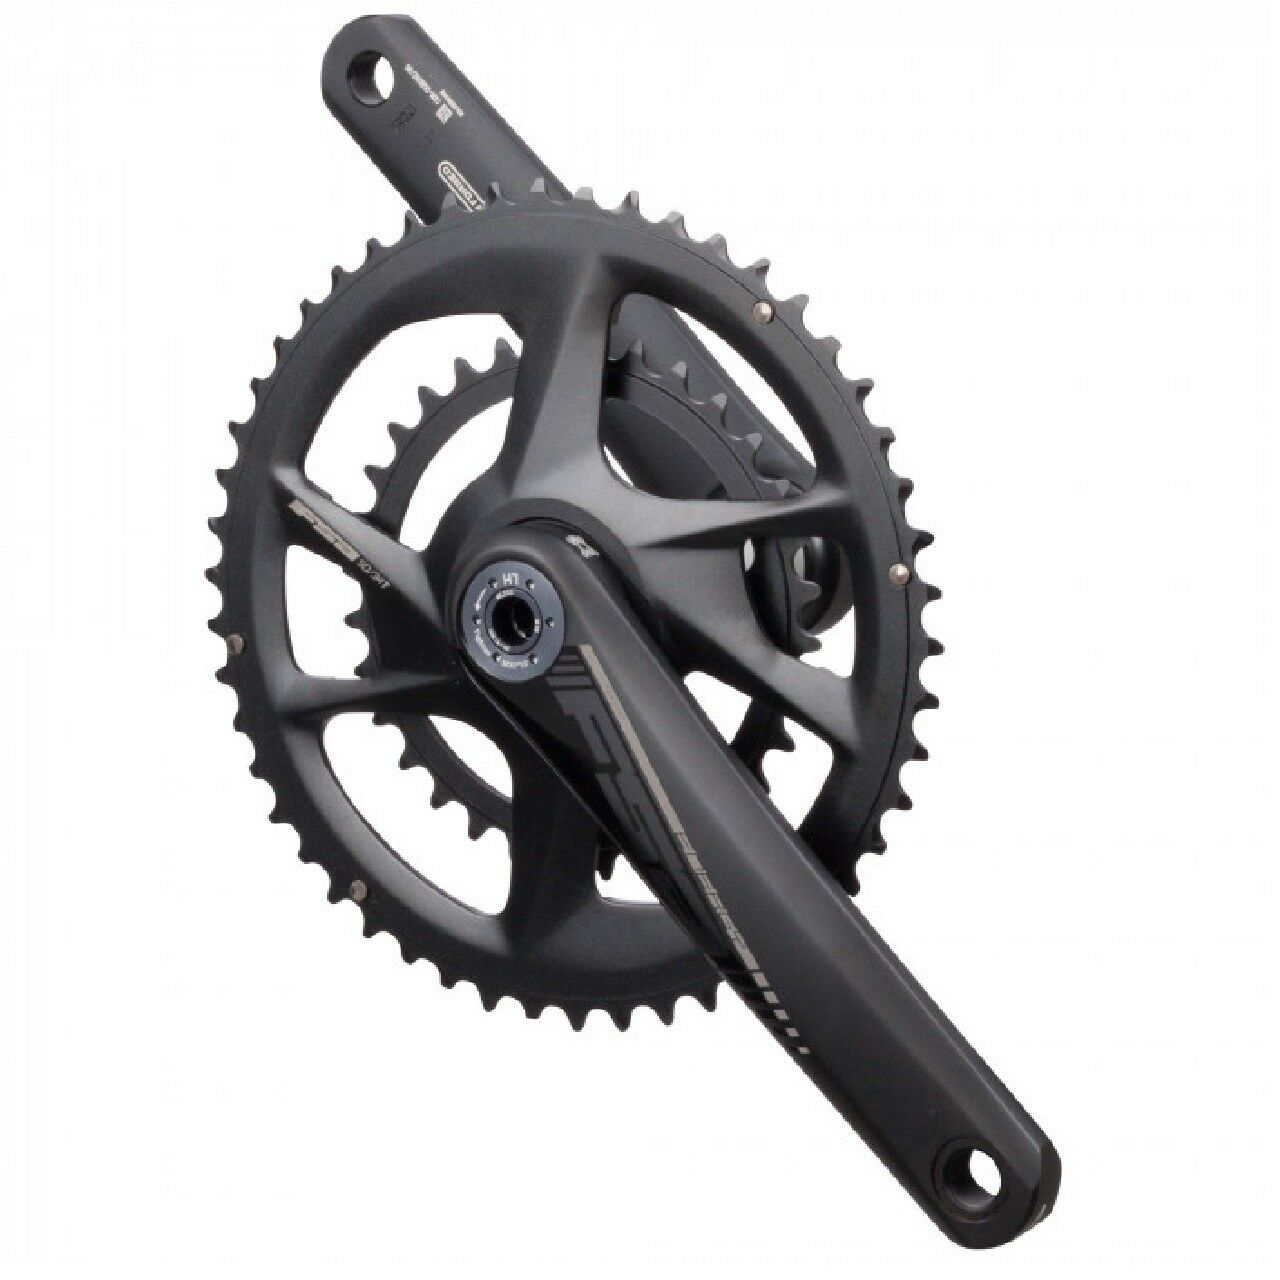 FSA ENERGY MODULAR ALLOY CRANKSET 34 50T 172.5mm BB386EVO DM